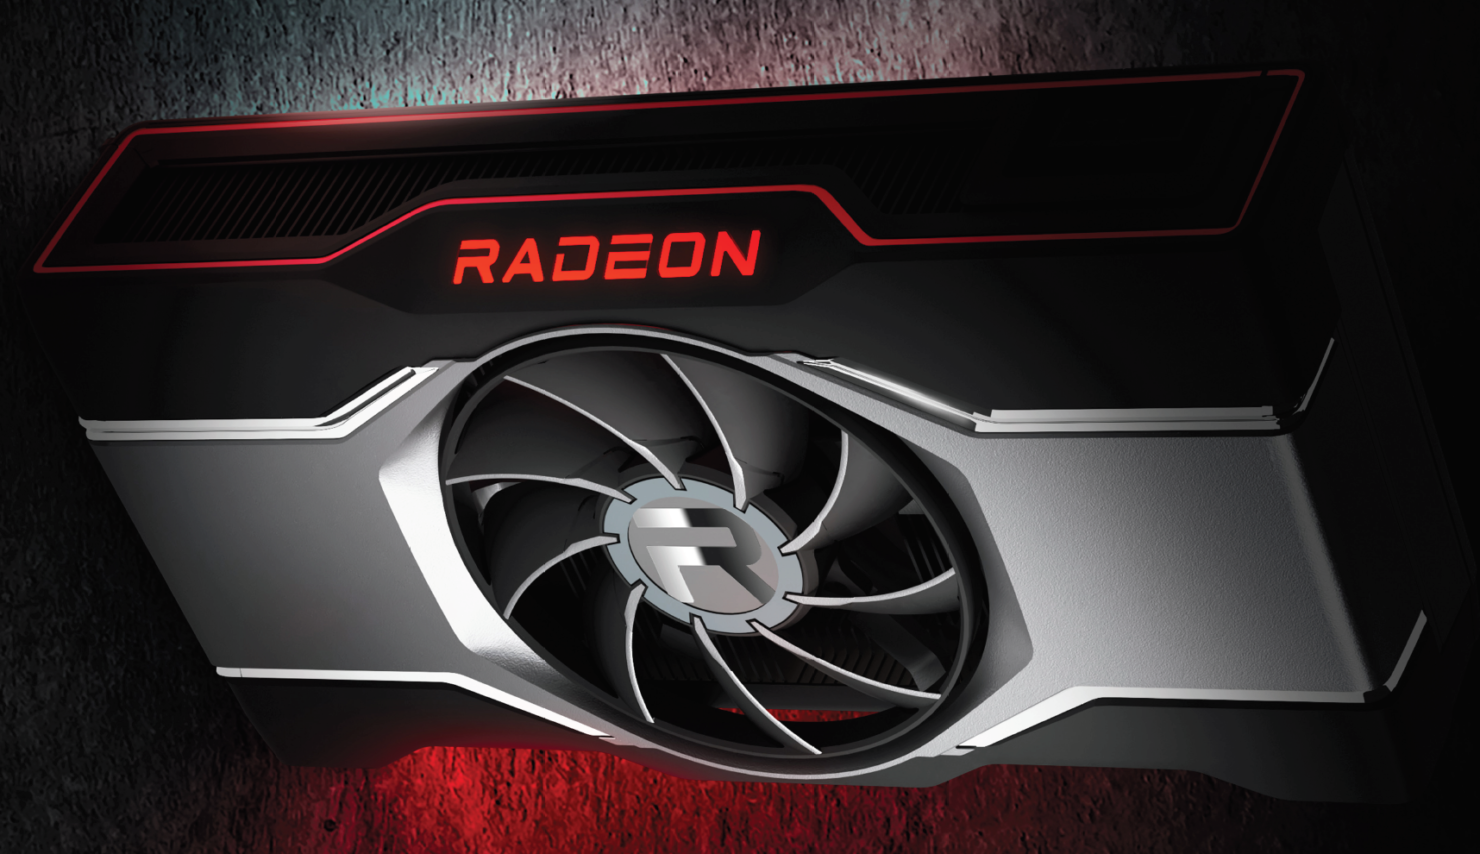 amd-radeon-rx-6600-graphics-card-specs-&-launch-date-leaked,-8-gb-memory-&-13th-october-launch